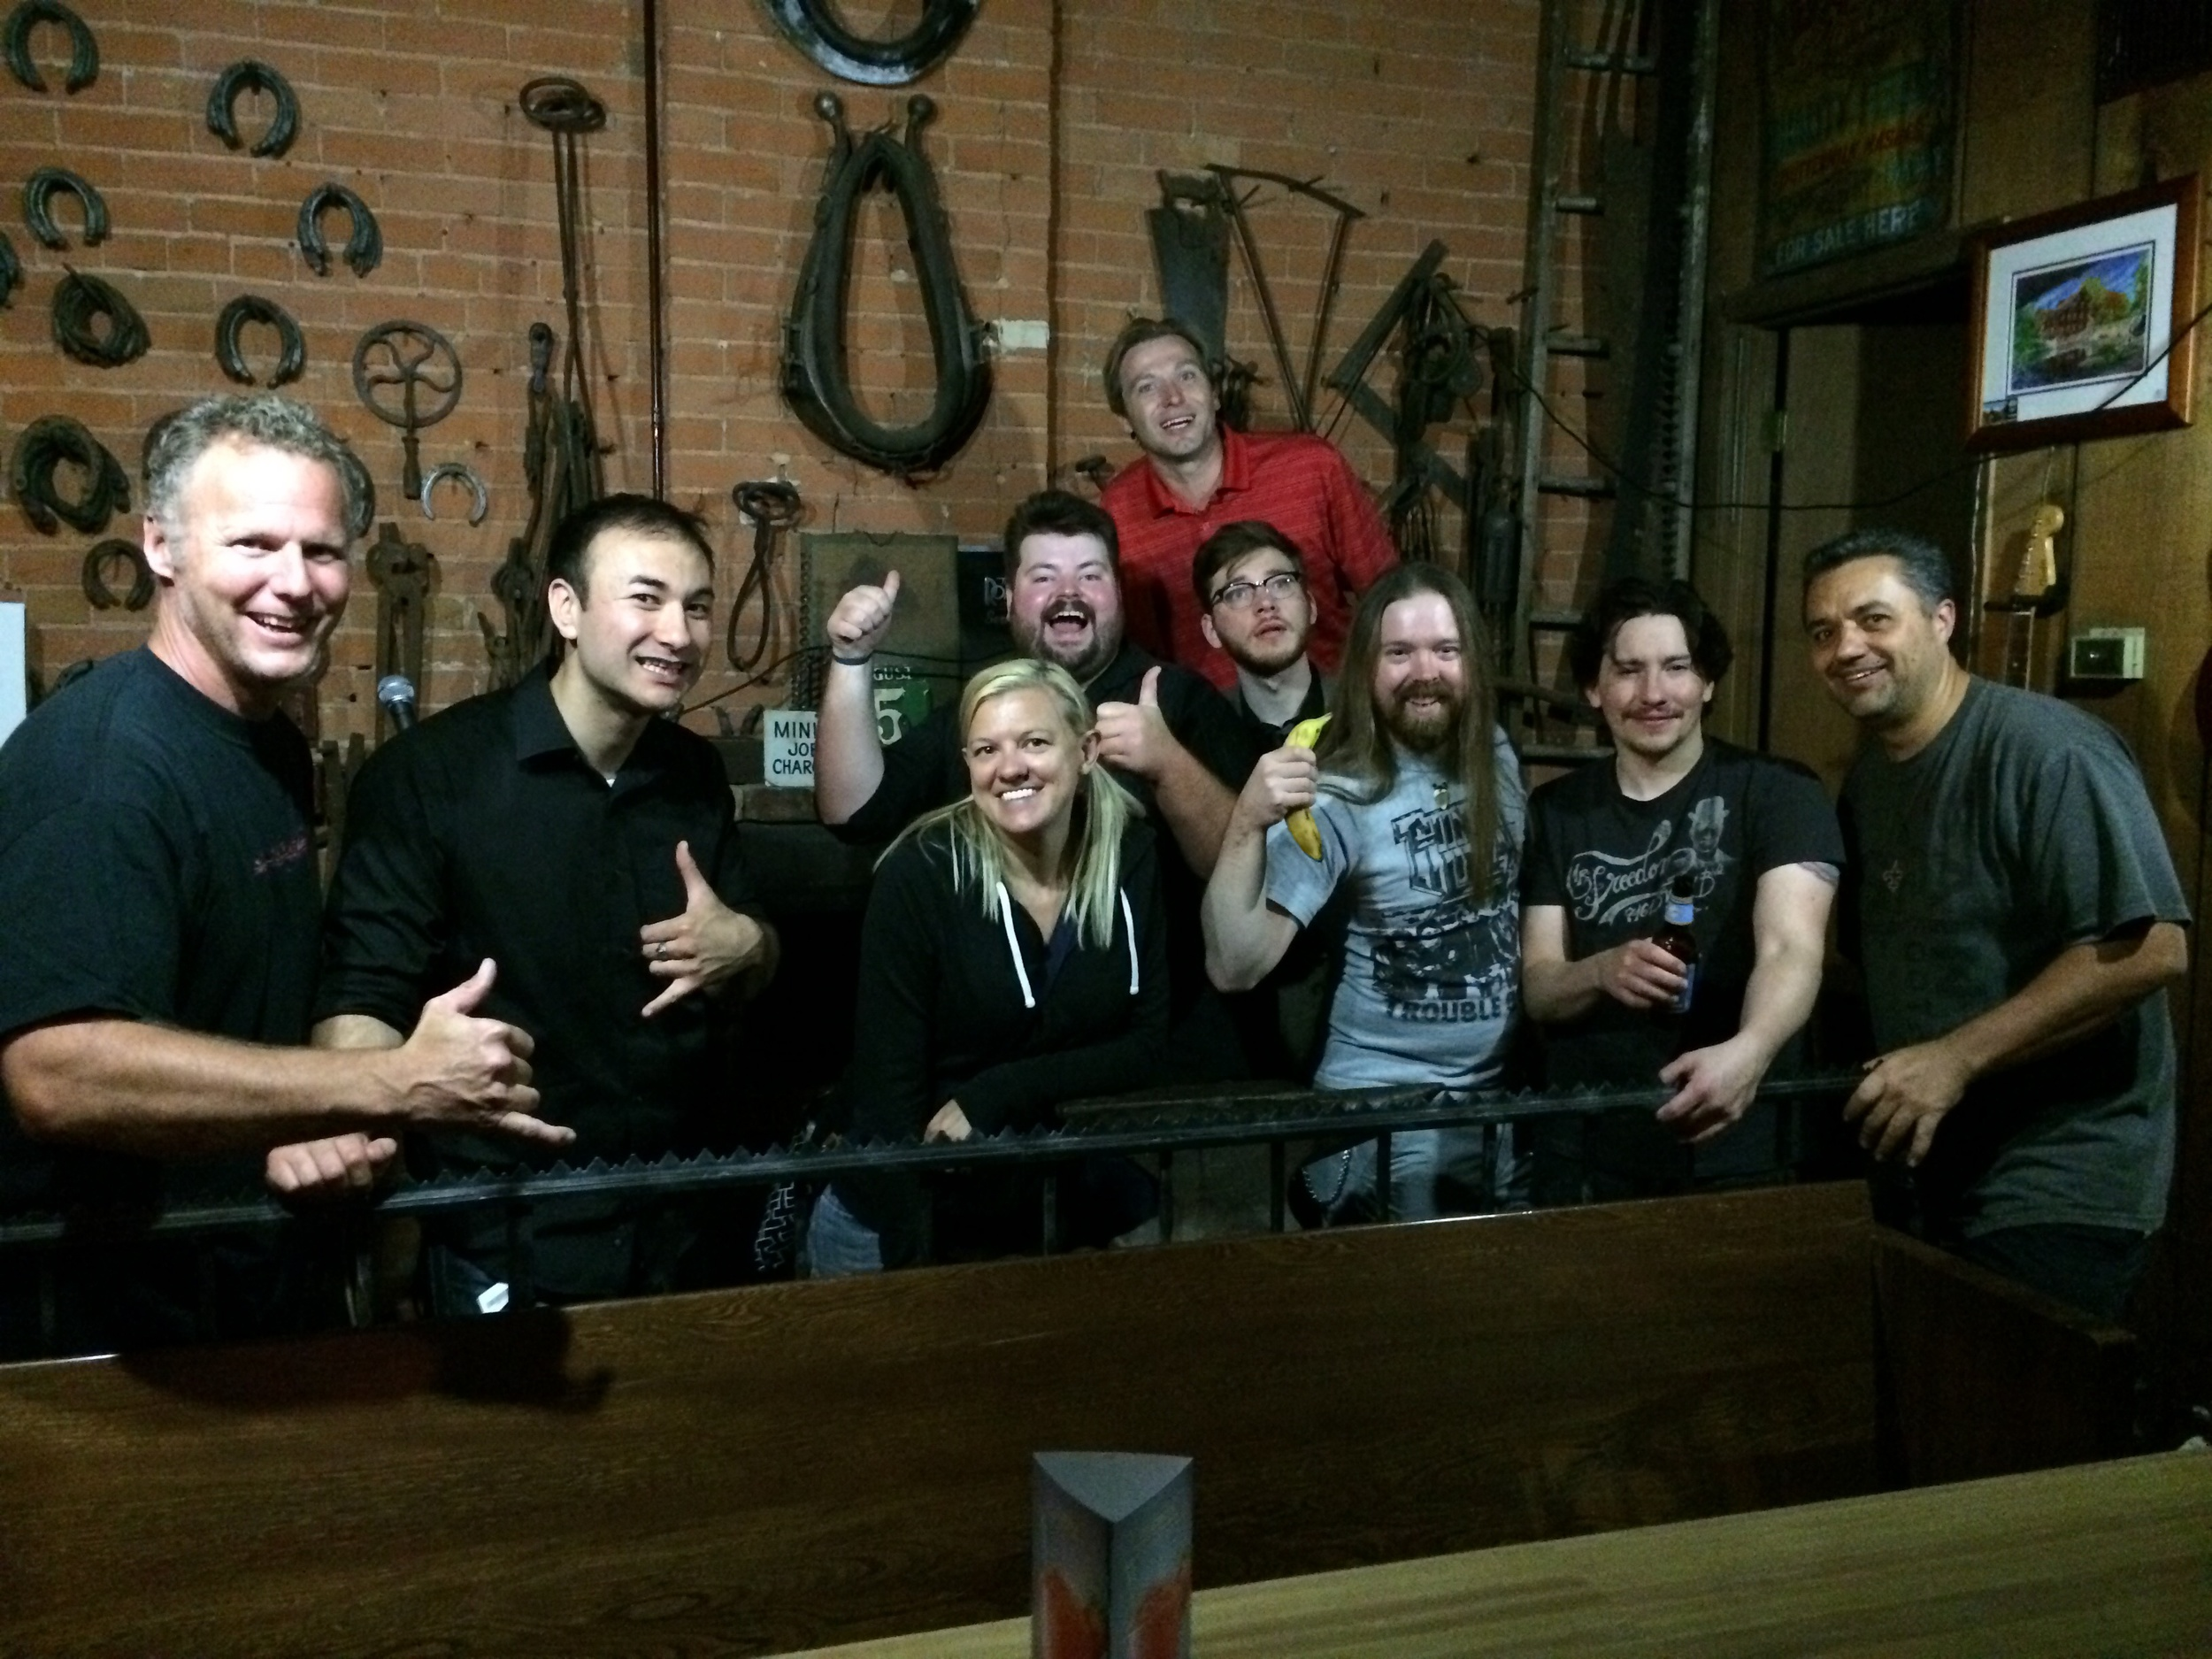 Hanging out with some great local comedians, and owner Wes